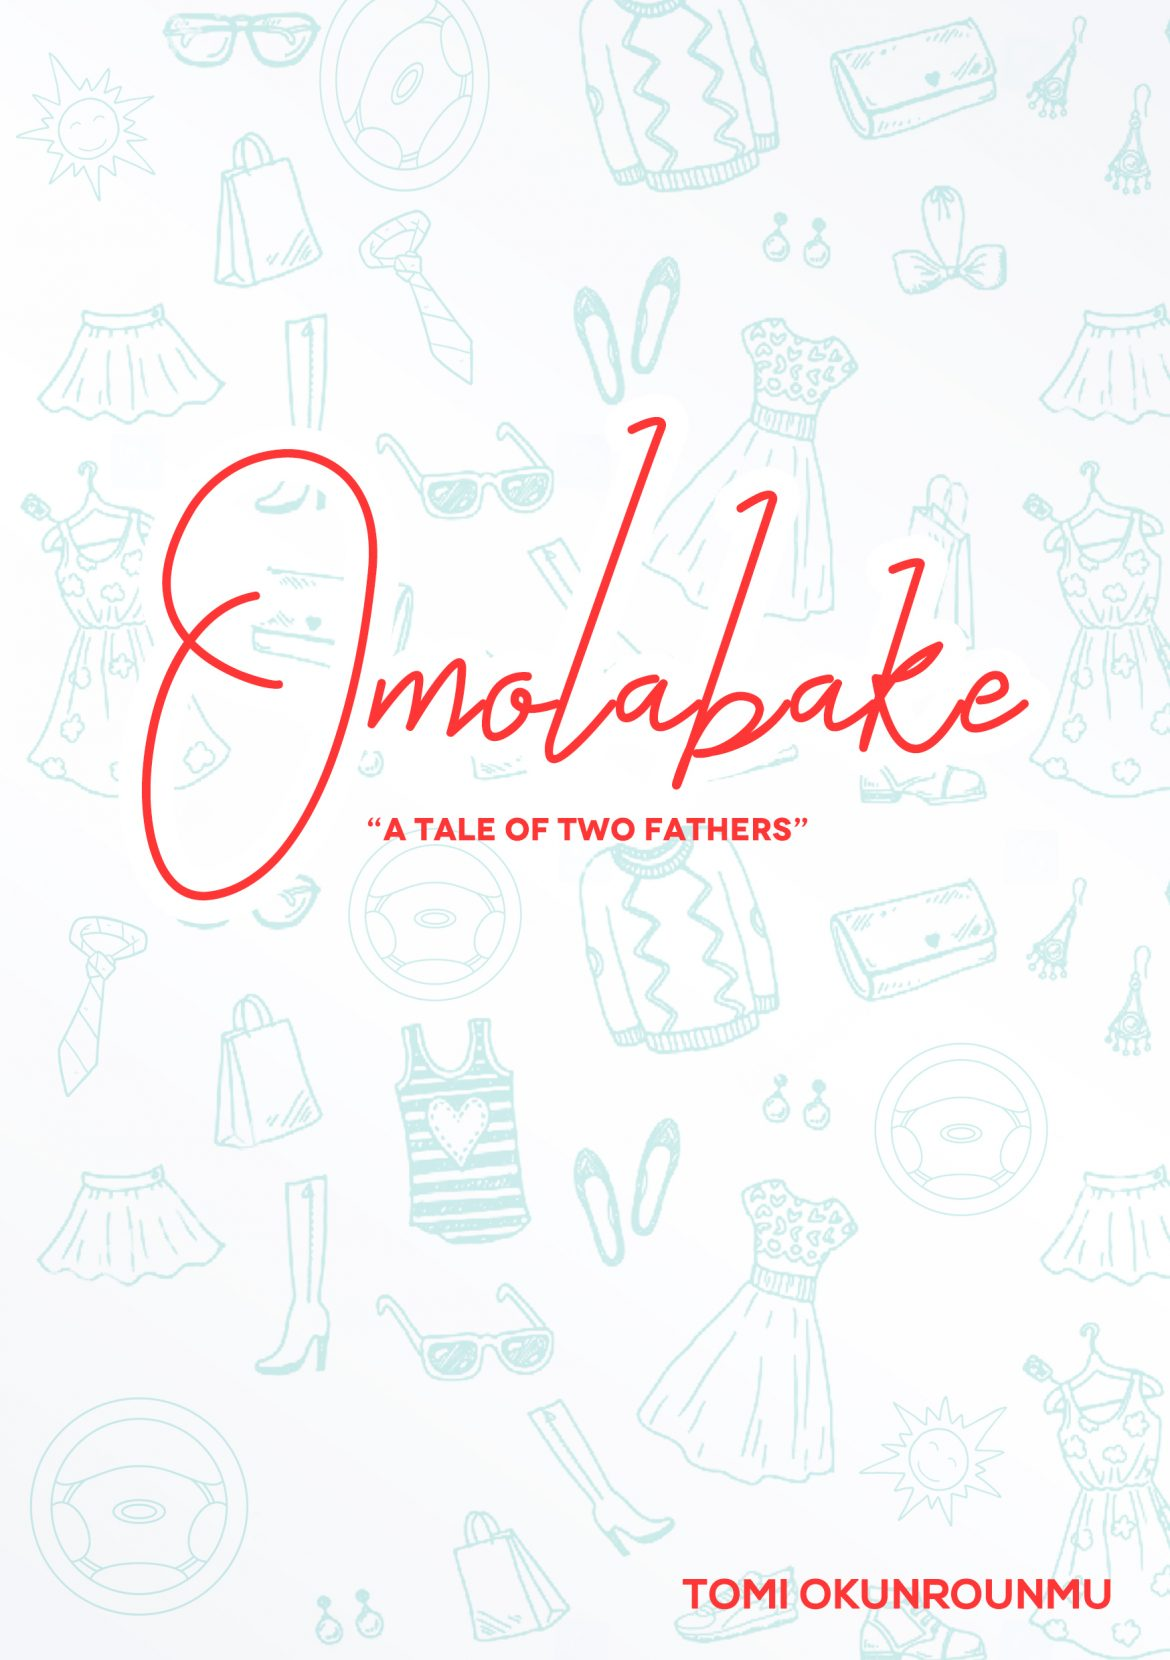 Find Out About My Upcoming Novel Omolabake (And Download Two Free Chapters )